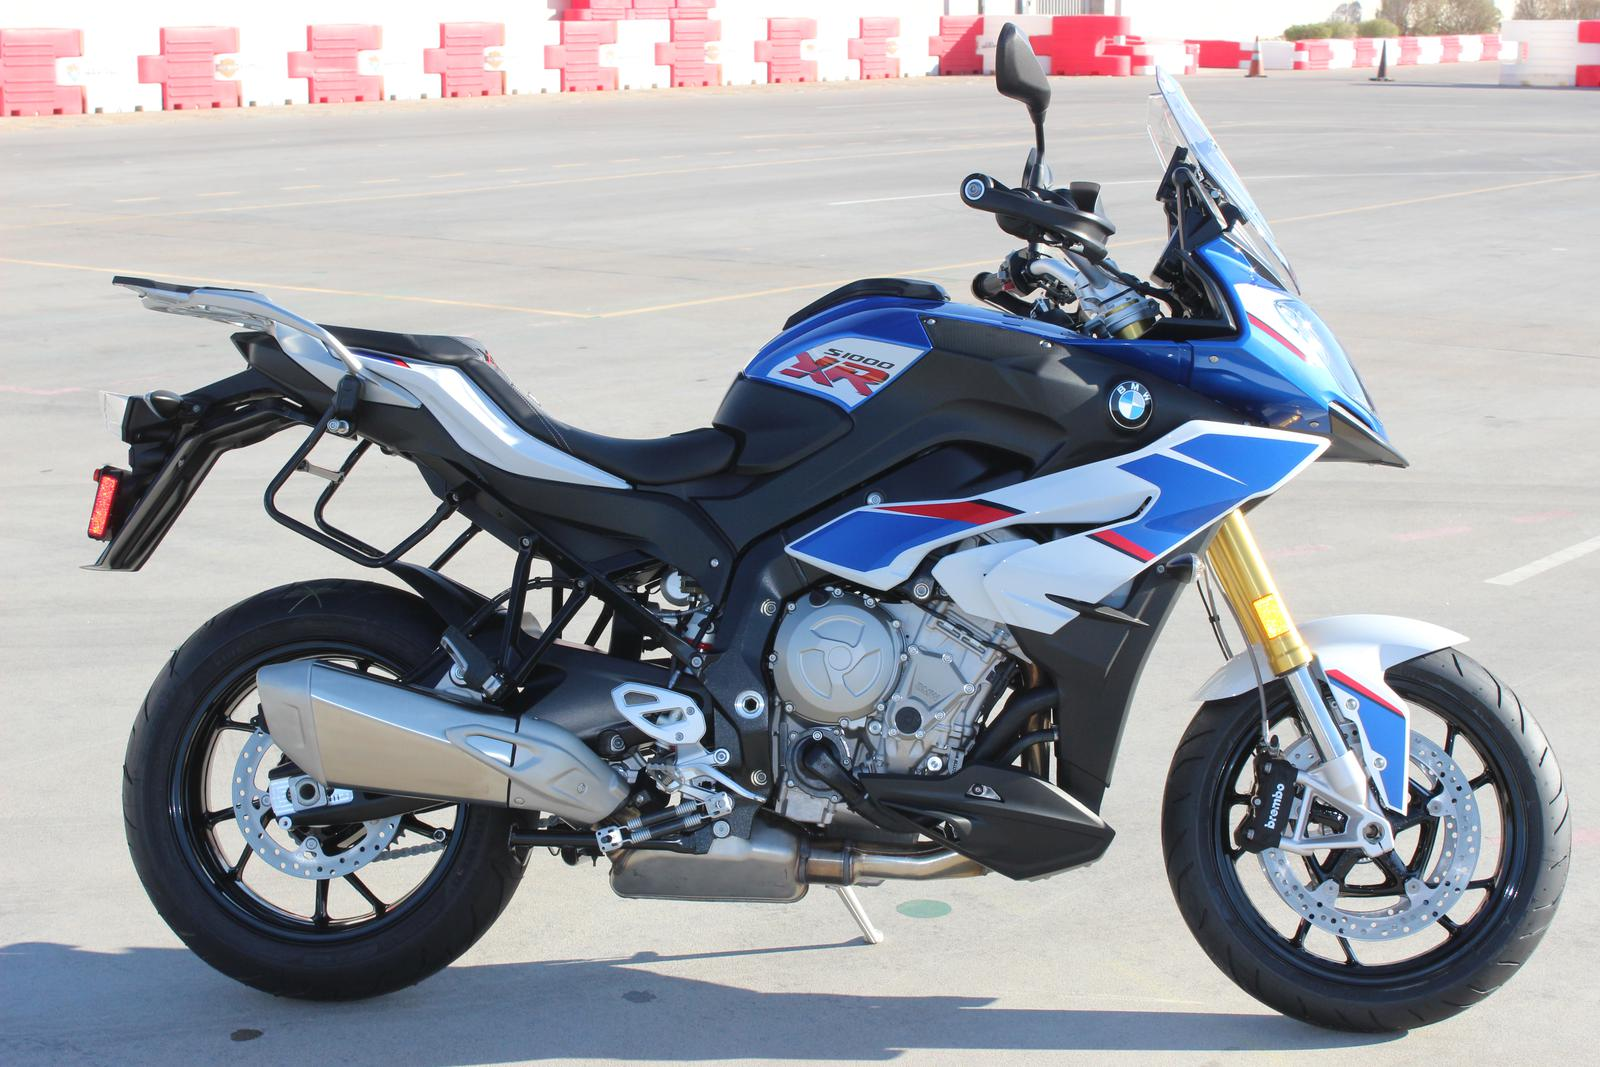 2018 bmw s 1000 xr new car release date and review 2018 amanda felicia. Black Bedroom Furniture Sets. Home Design Ideas